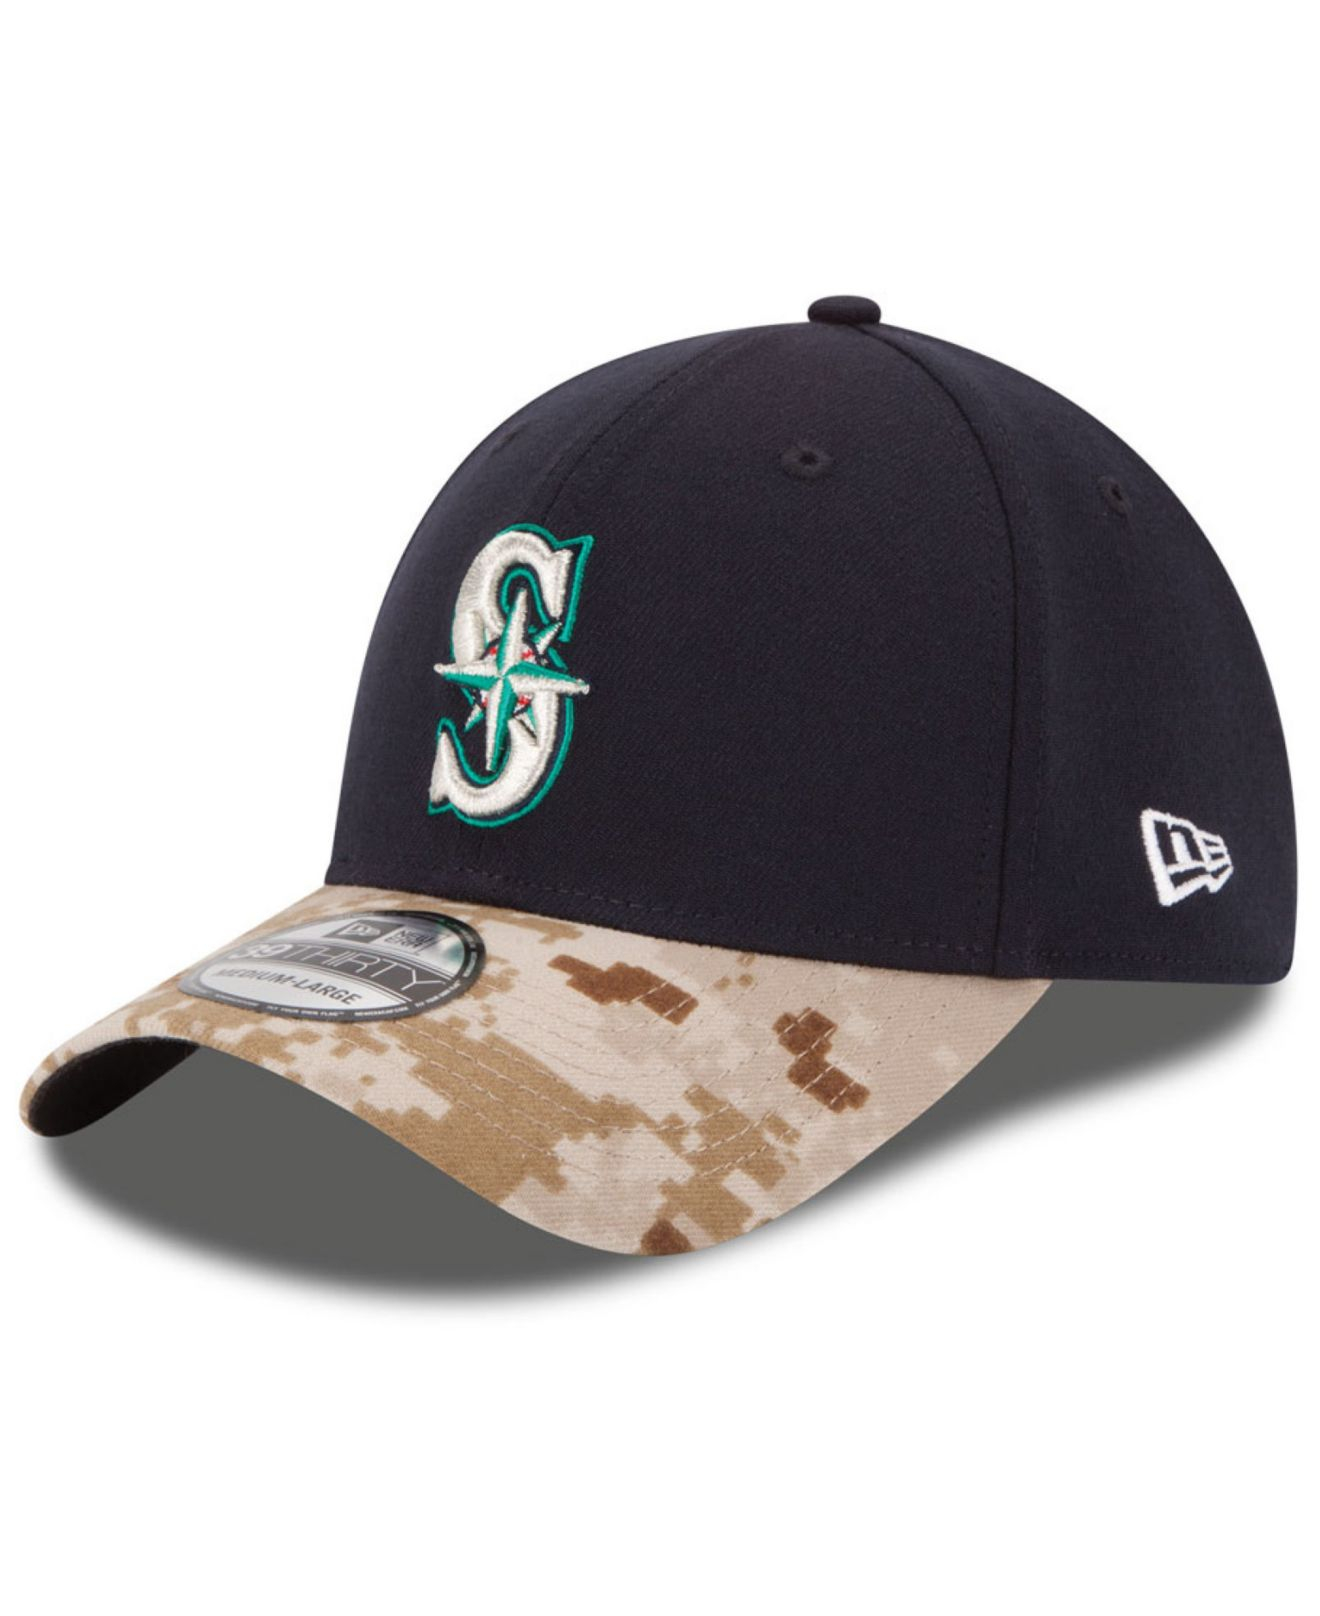 b959f7112a0ce ... new era black 2018 memorial day 39thirty flex hat 0c1e5 cbeee  reduced  lyst ktz seattle mariners memorial day 39thirty cap in blue for men bb3c5  1c1c3